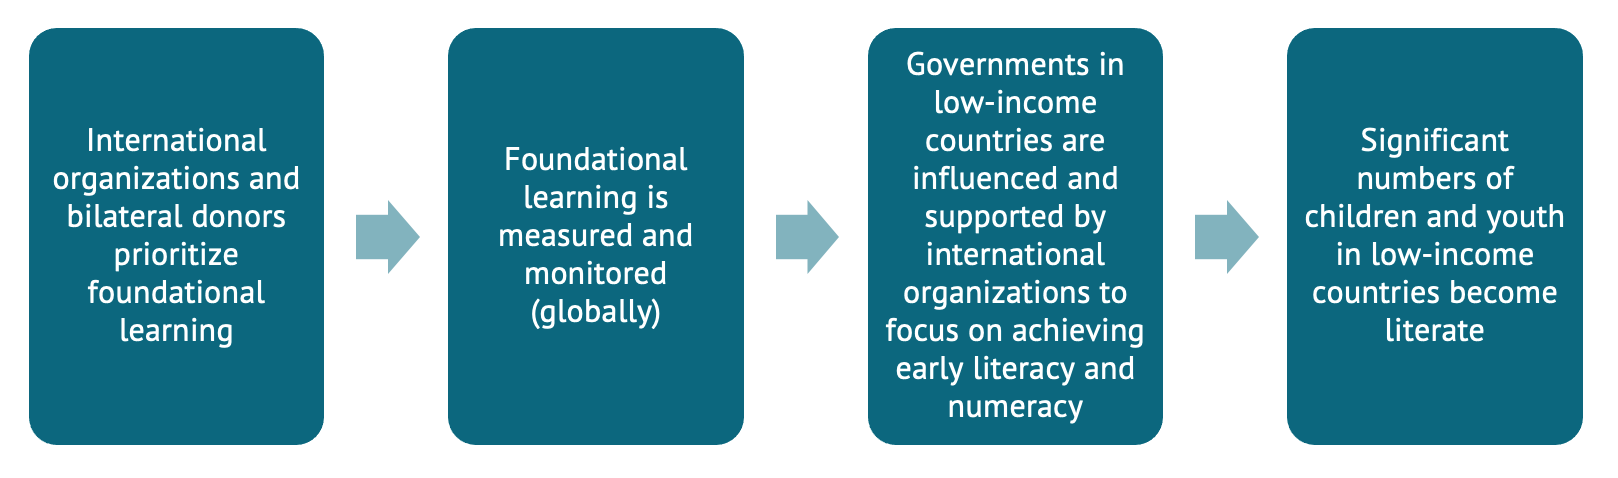 Flowchart showing a theory of change: donors prioritize FLN, its better measured, developing countries focus on it more, and children learn more